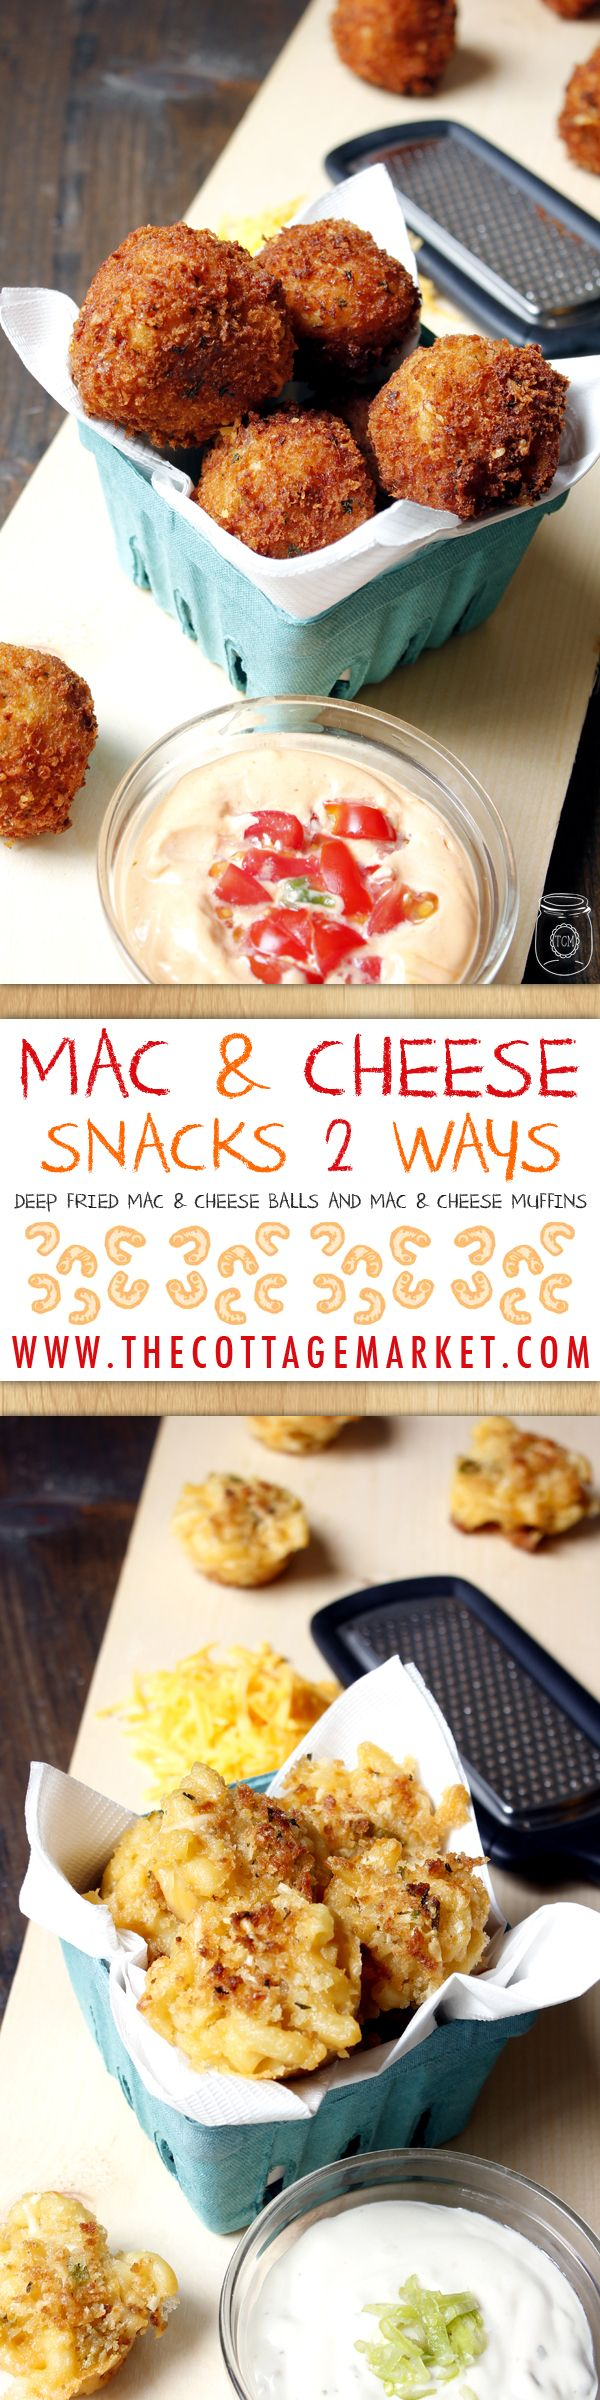 Mac and Cheese Snacks Two Ways - The Cottage Market #Mac&CheeseBalls, #Mac&CheeseSnack, #Mac&CheeseMuffins